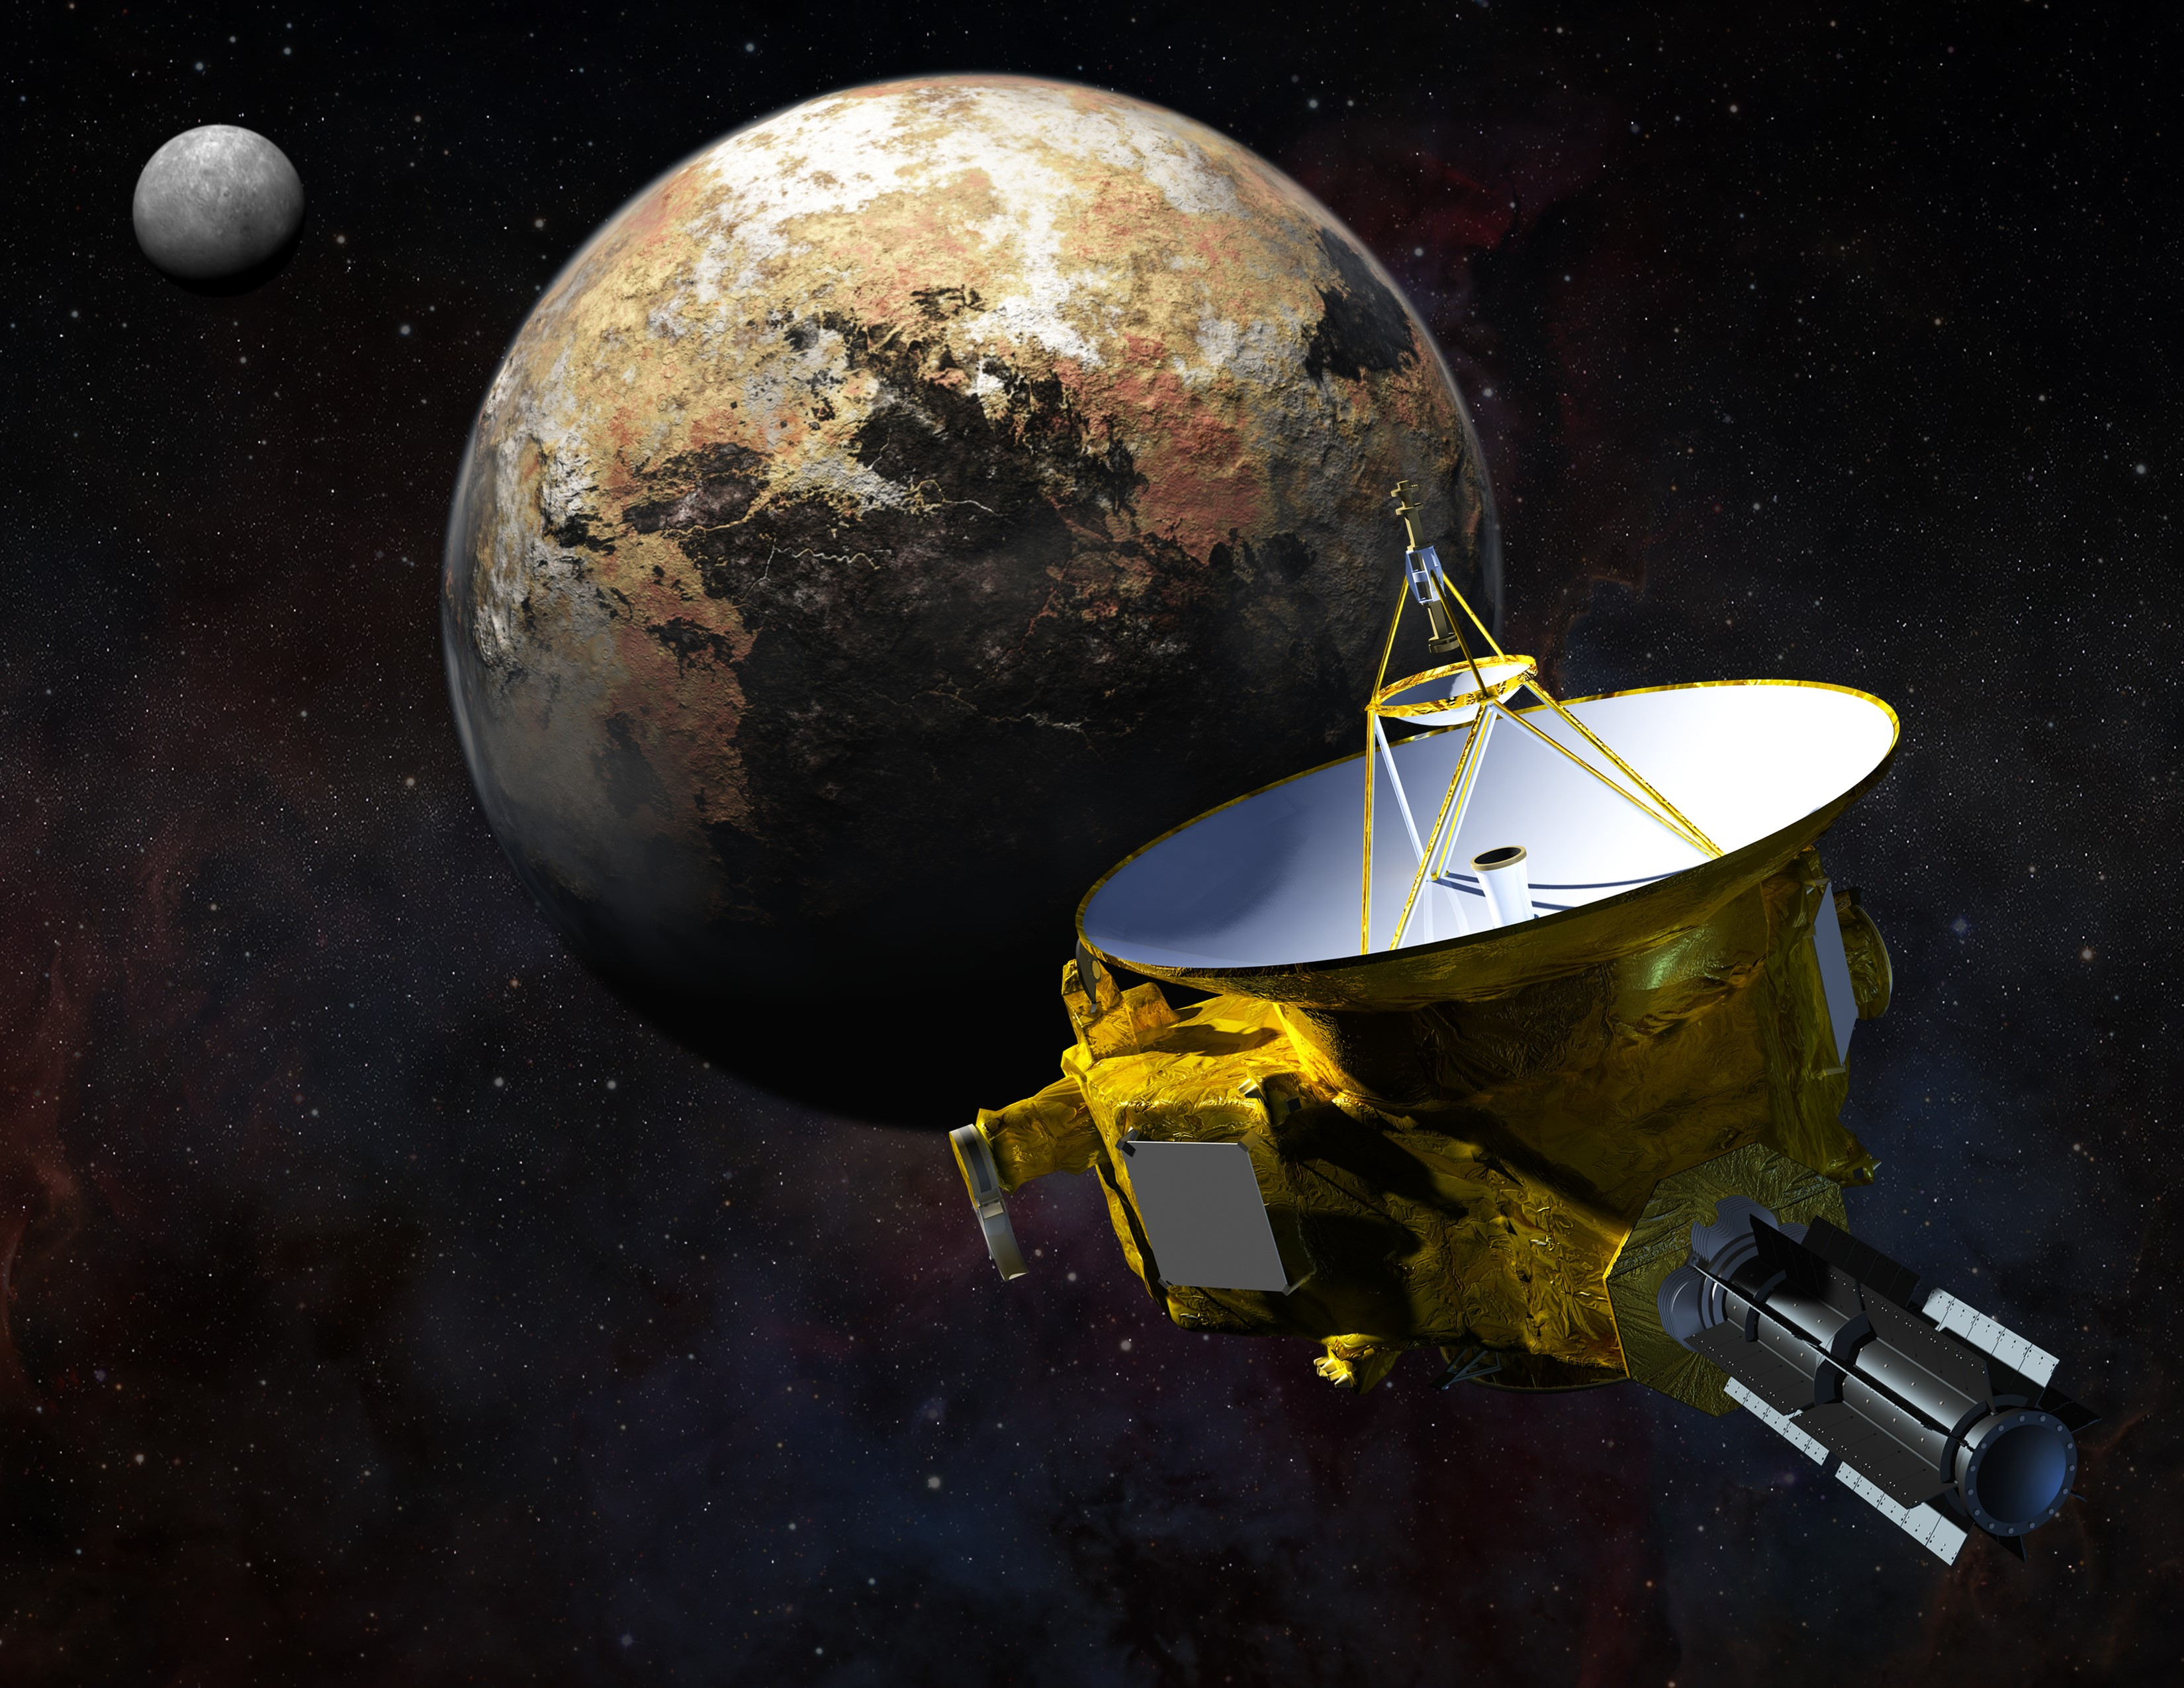 New Horizons spacecraft approaches Pluto and its largest moon, Charon